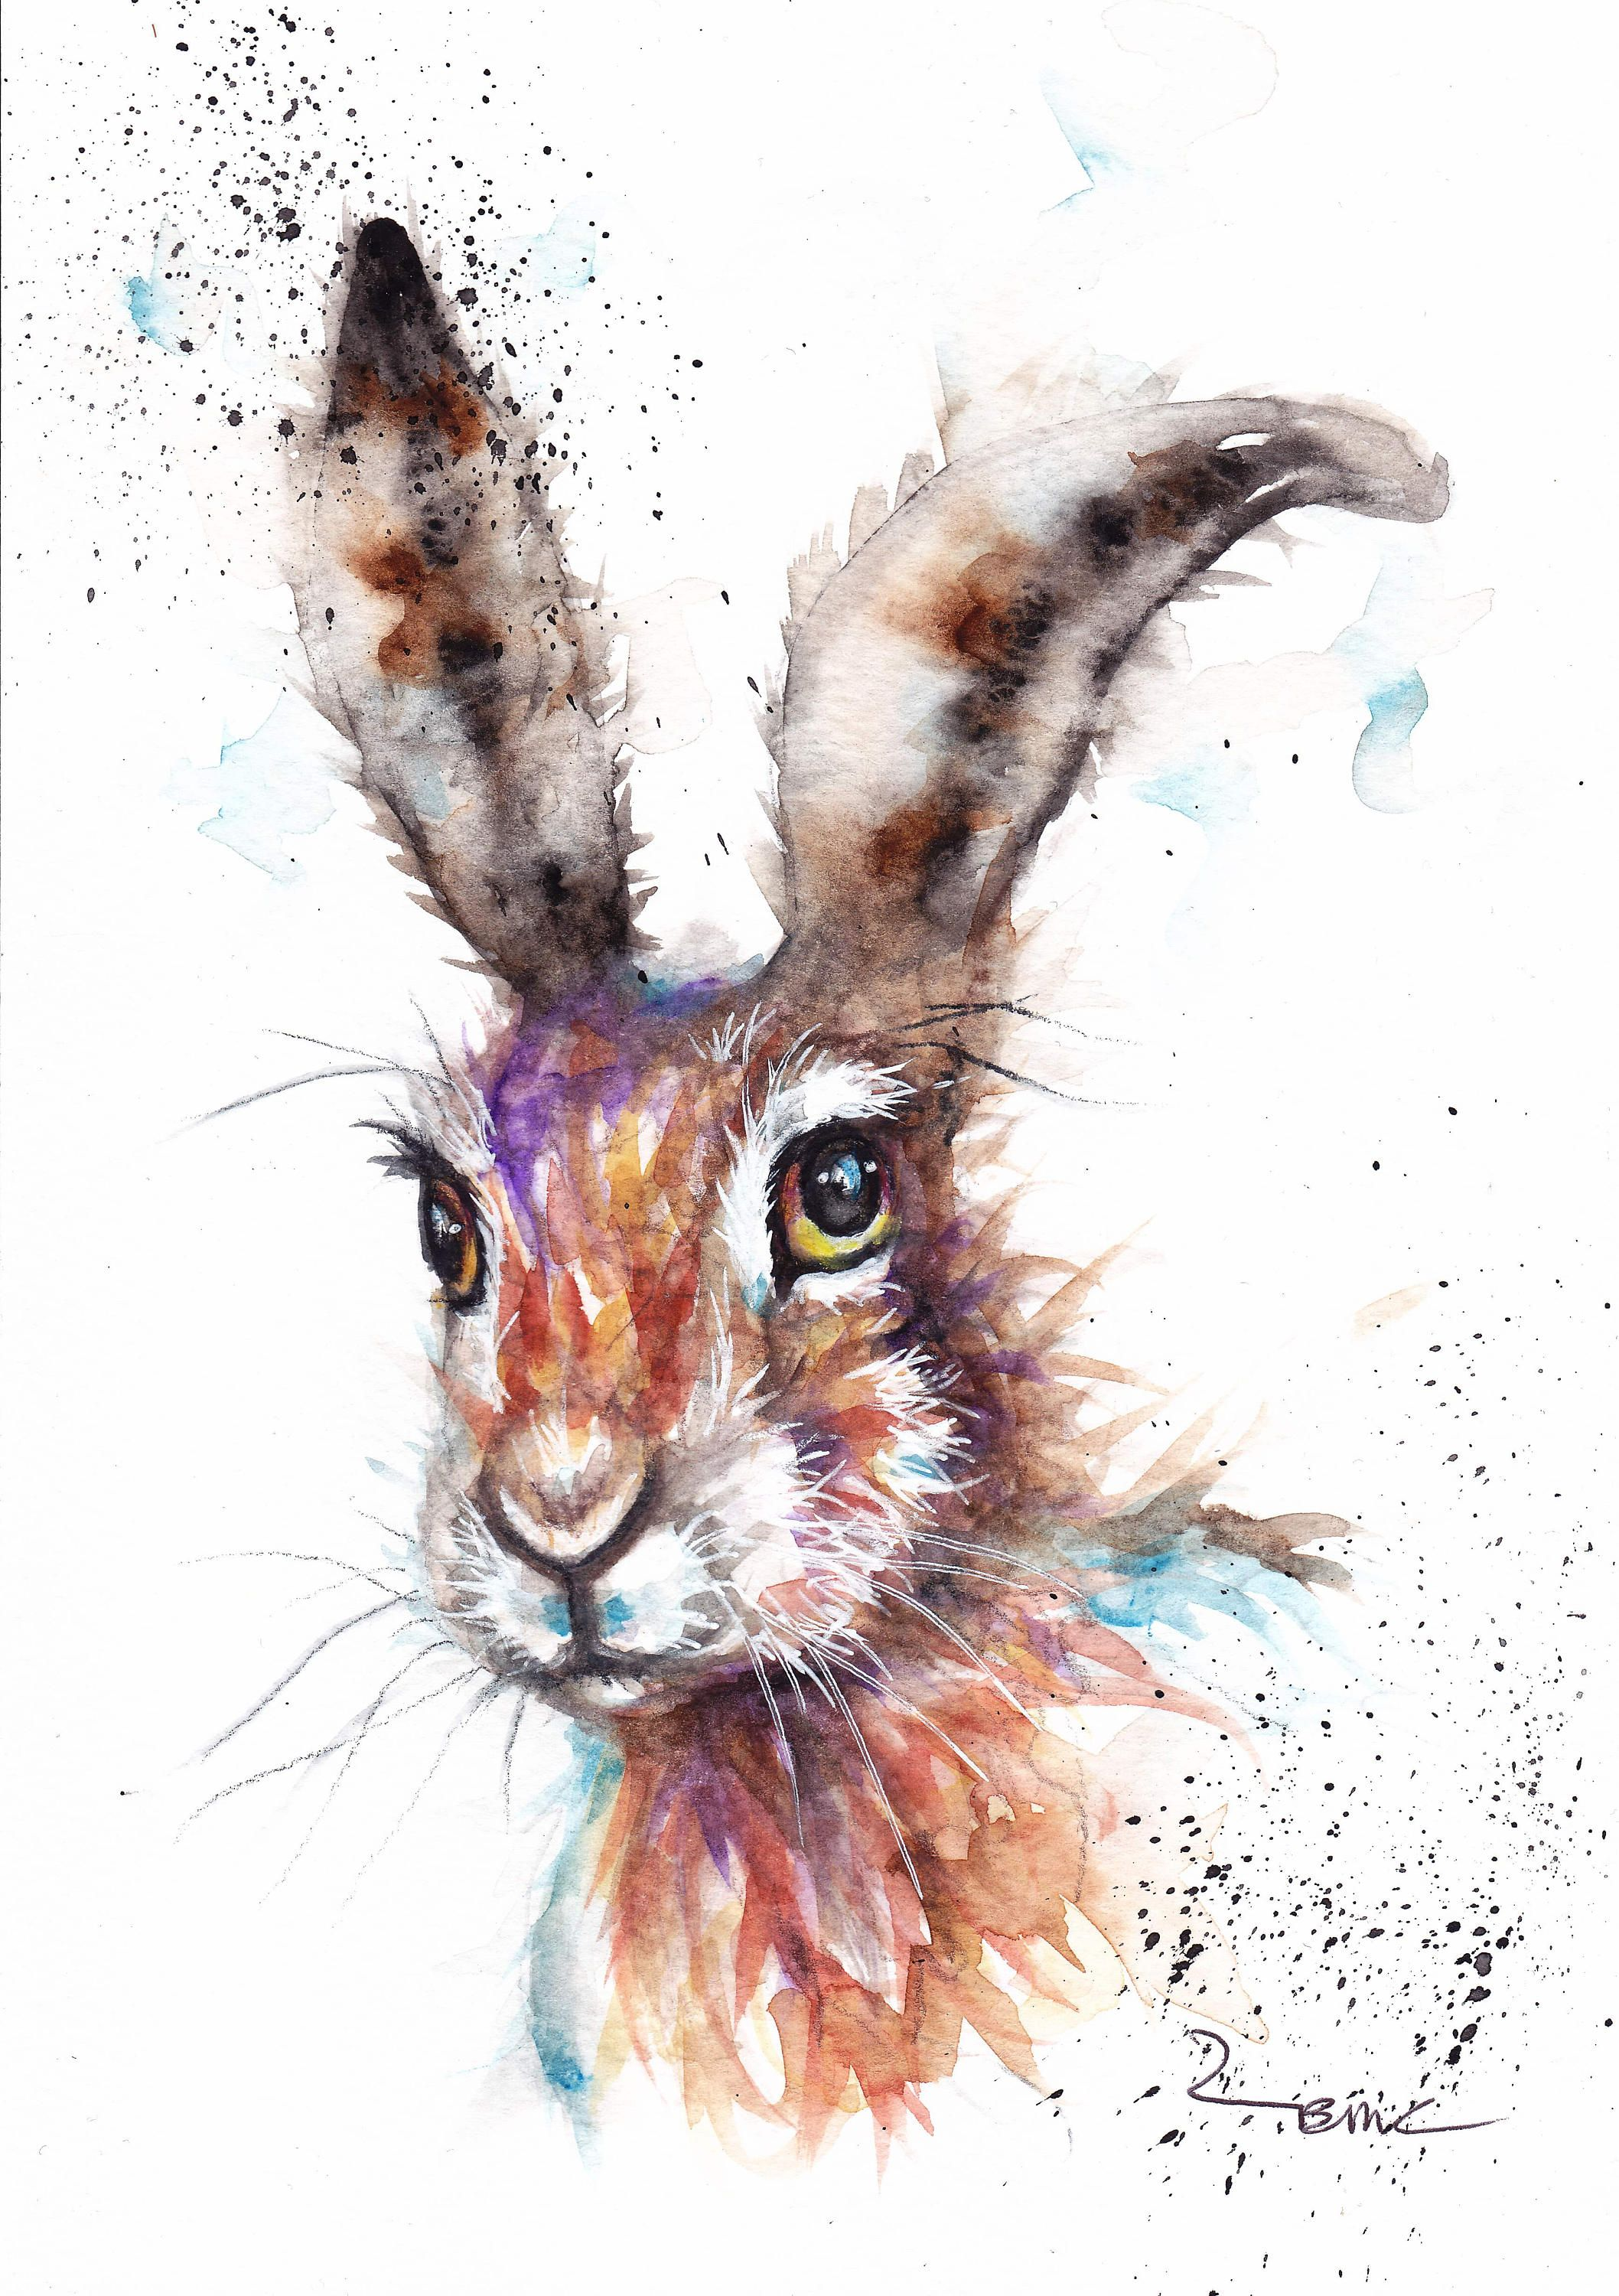 Hare Painting Watercolour Hare Paintings For Sale Hare Animal